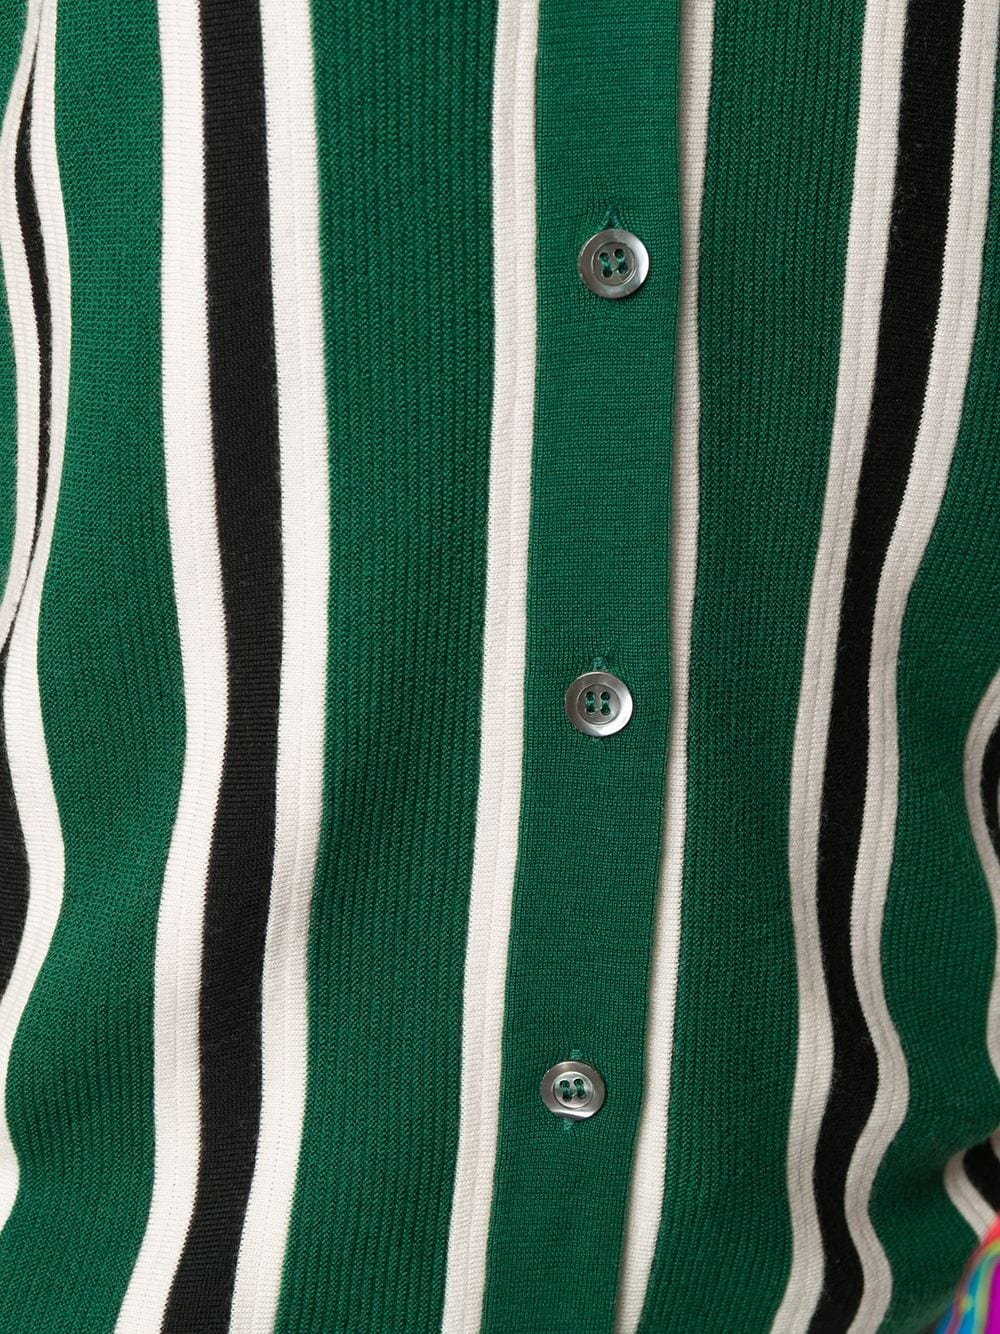 Green wool jumper featuring vertical black and white stripes ALBERTO ASPESI |  | 5036-496701503